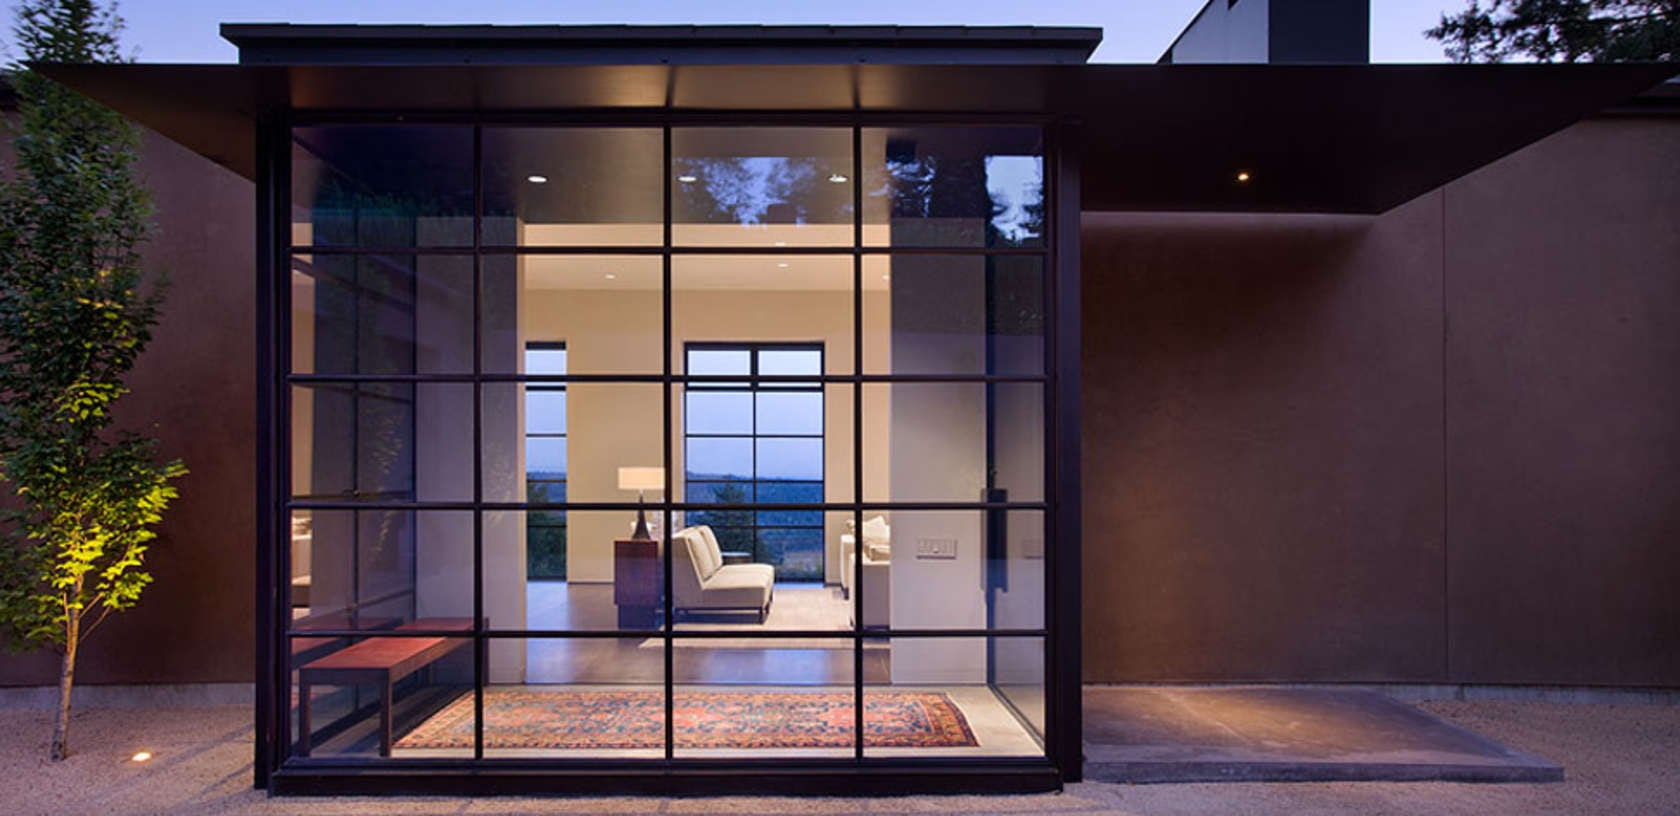 816 #1A3FB1 Get The Big Picture: Top Products For Creating Dream Window Walls  image Residential Steel Doors And Frames 47631680